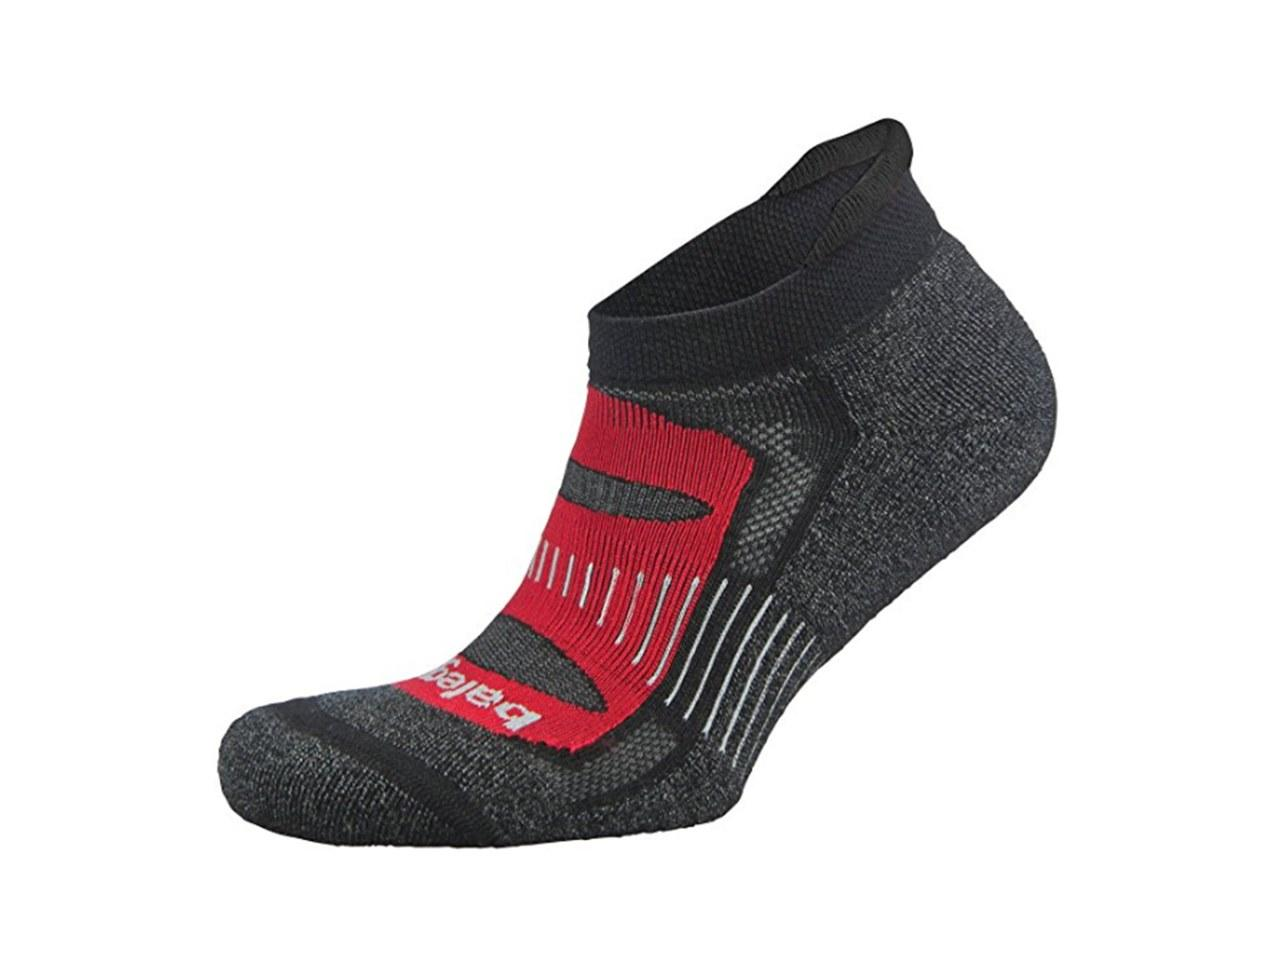 """<p>""""These socks have lots of thick cushioning and are super comfortable and long-lasting.""""<br> —<a rel=""""nofollow"""" href=""""https://notyouraveragerunner.com/"""">Jill Angie</a>, host of the <a rel=""""nofollow"""" href=""""https://notyouraveragerunner.com/podcast/"""">Not Your Average Runner Podcast</a></p> <p><strong>Buy them:</strong> $13, <a rel=""""nofollow"""" href=""""https://www.amazon.com/Balega-Blister-Resist-1-Pair-X-Large/dp/B00B9IOQGG/ref=sr_1_2_sspa?ie=UTF8&qid=1536163282&sr=8-2-spons&keywords=balega%20socks%20blister%20resist&psc=1"""" rel=""""nofollow"""">amazon.com</a></p>"""